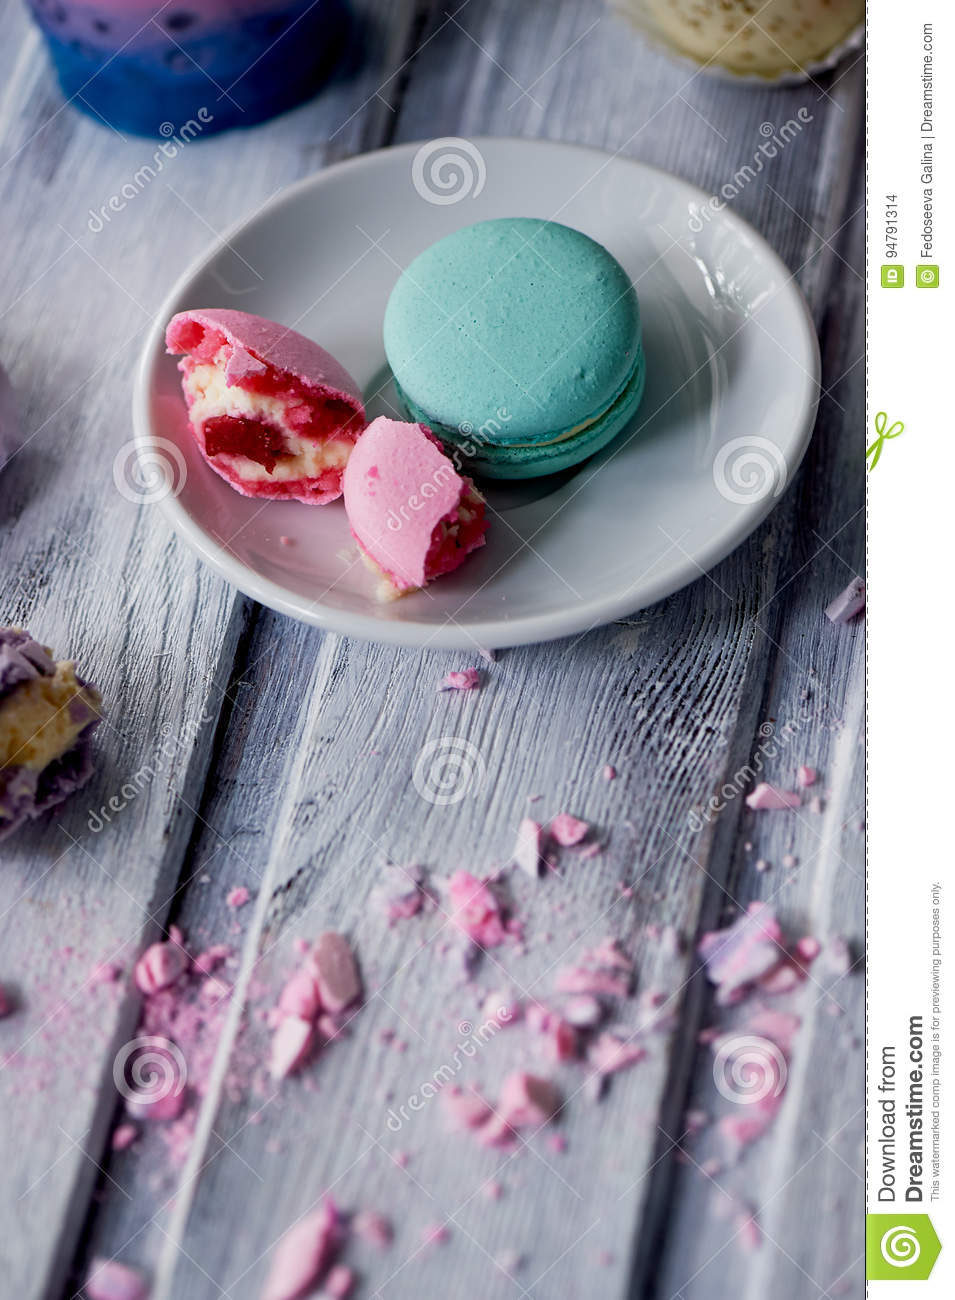 Beautiful Sweets Pastel Shades On A Beautiful Wooden